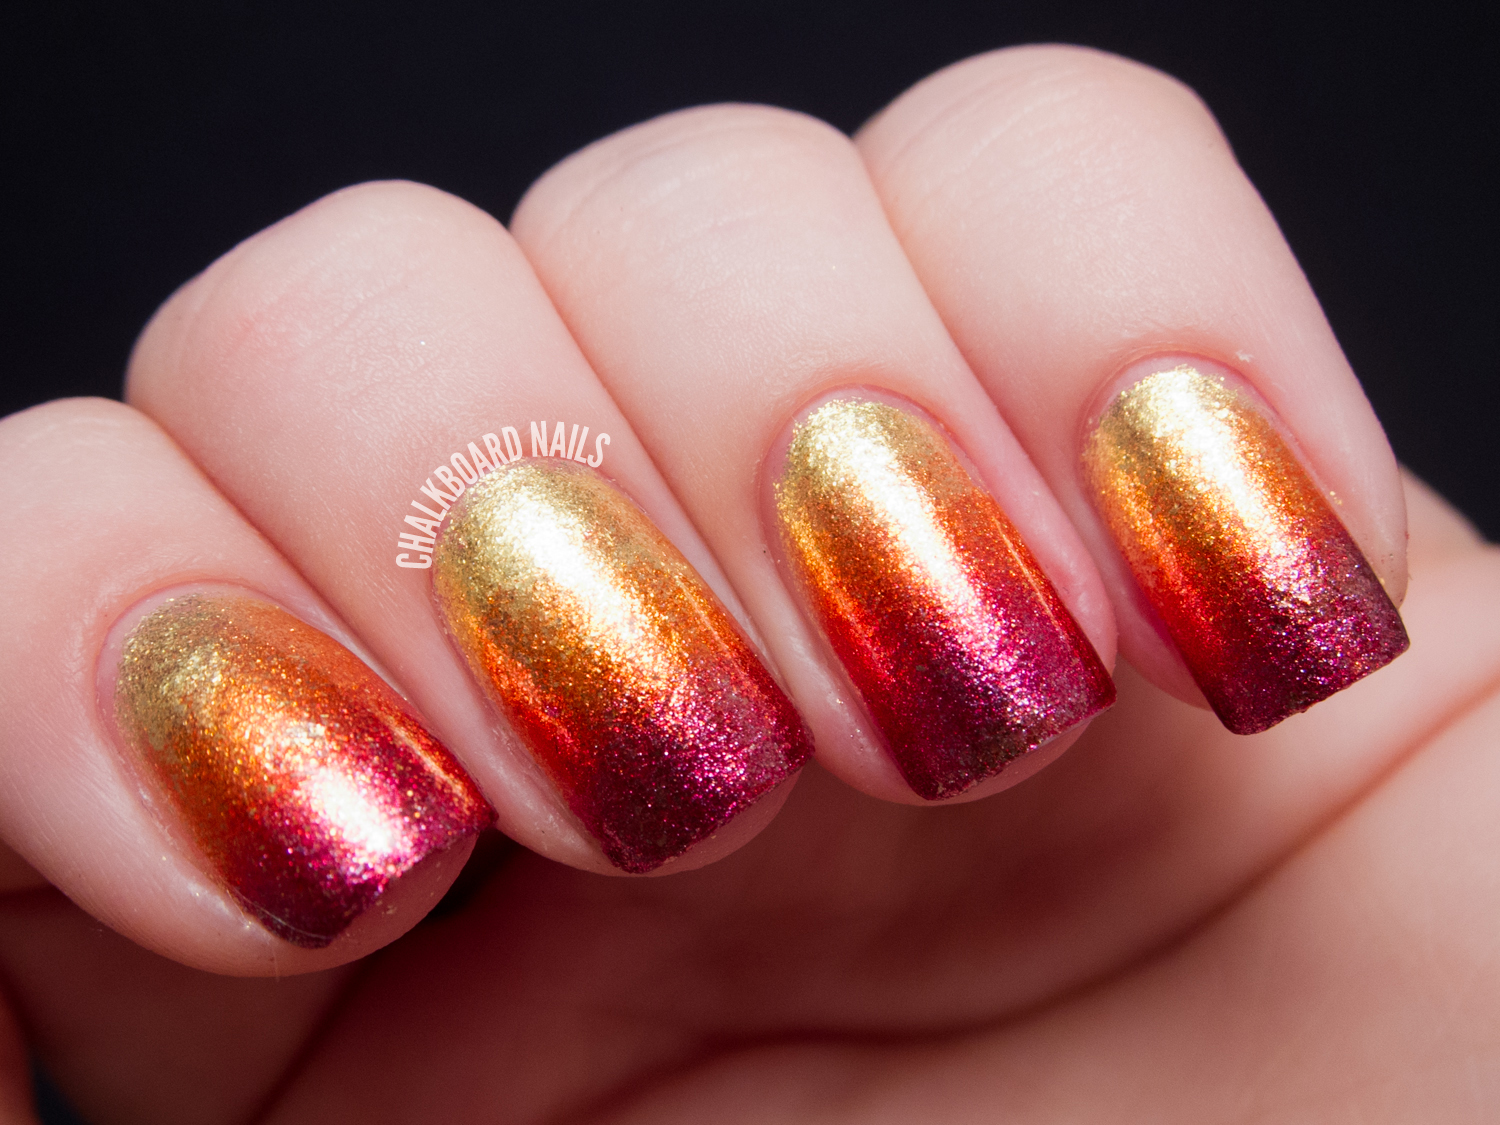 Nail Art: Zoya Irresistible Nail Art